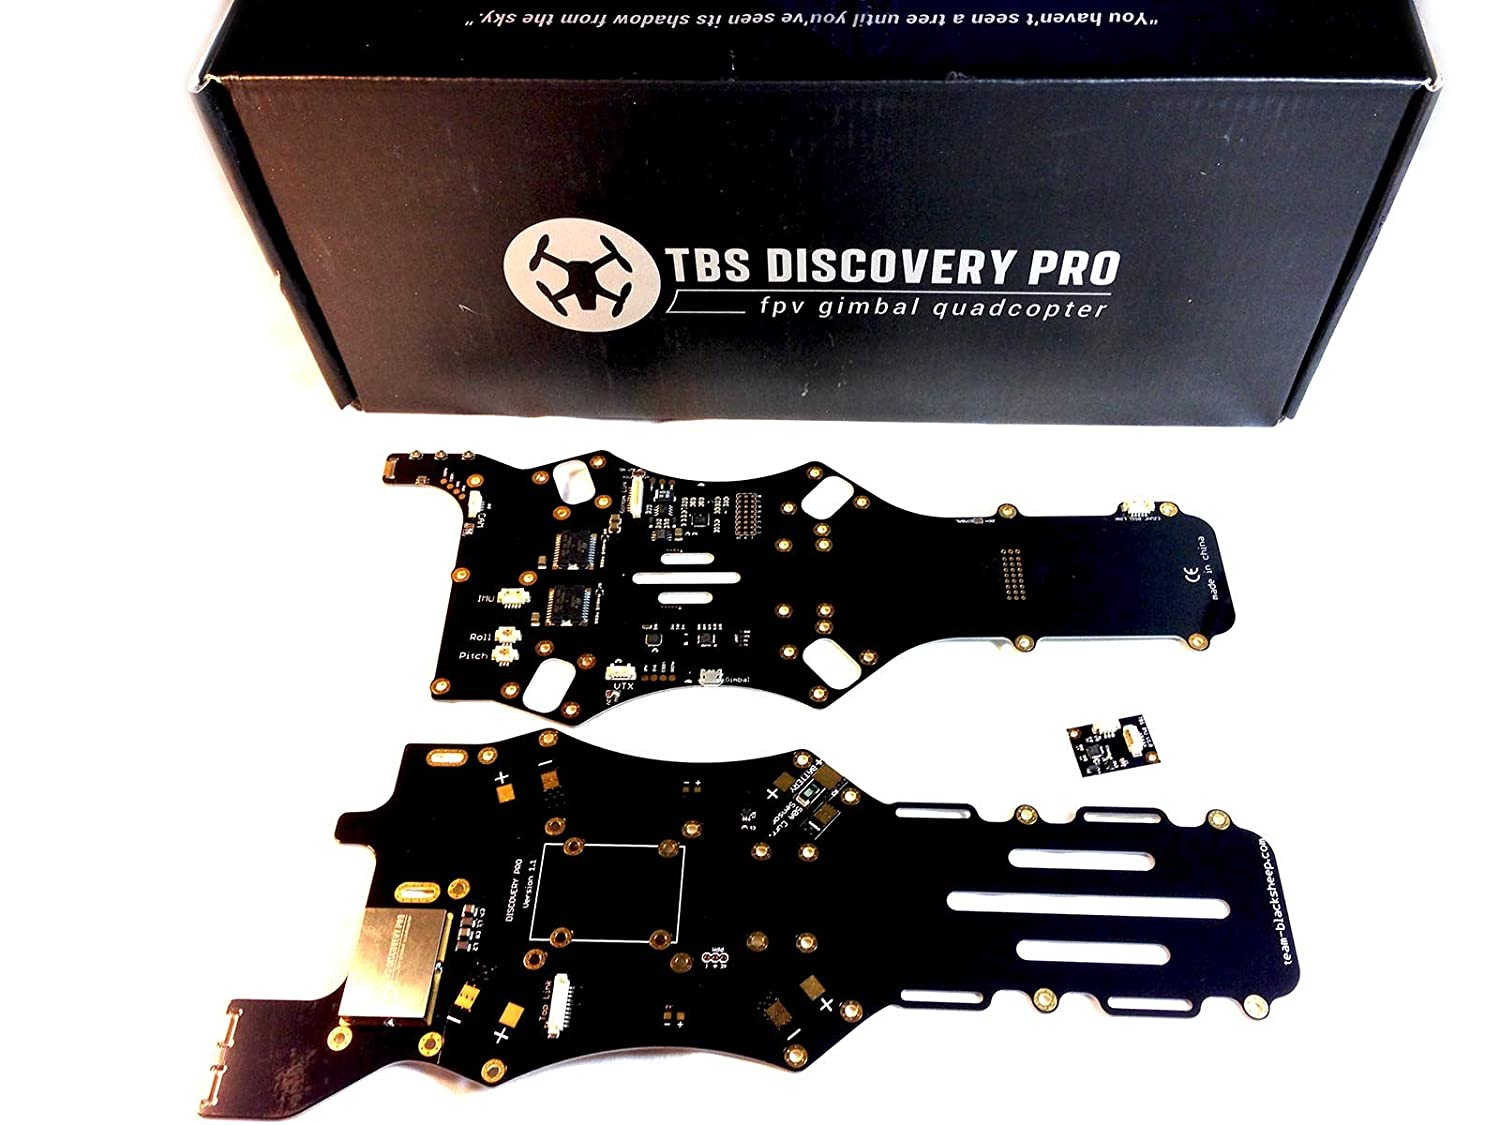 Amazon.com: TBS Discovery Pro Gimbal Frame for Aerial Photography ...